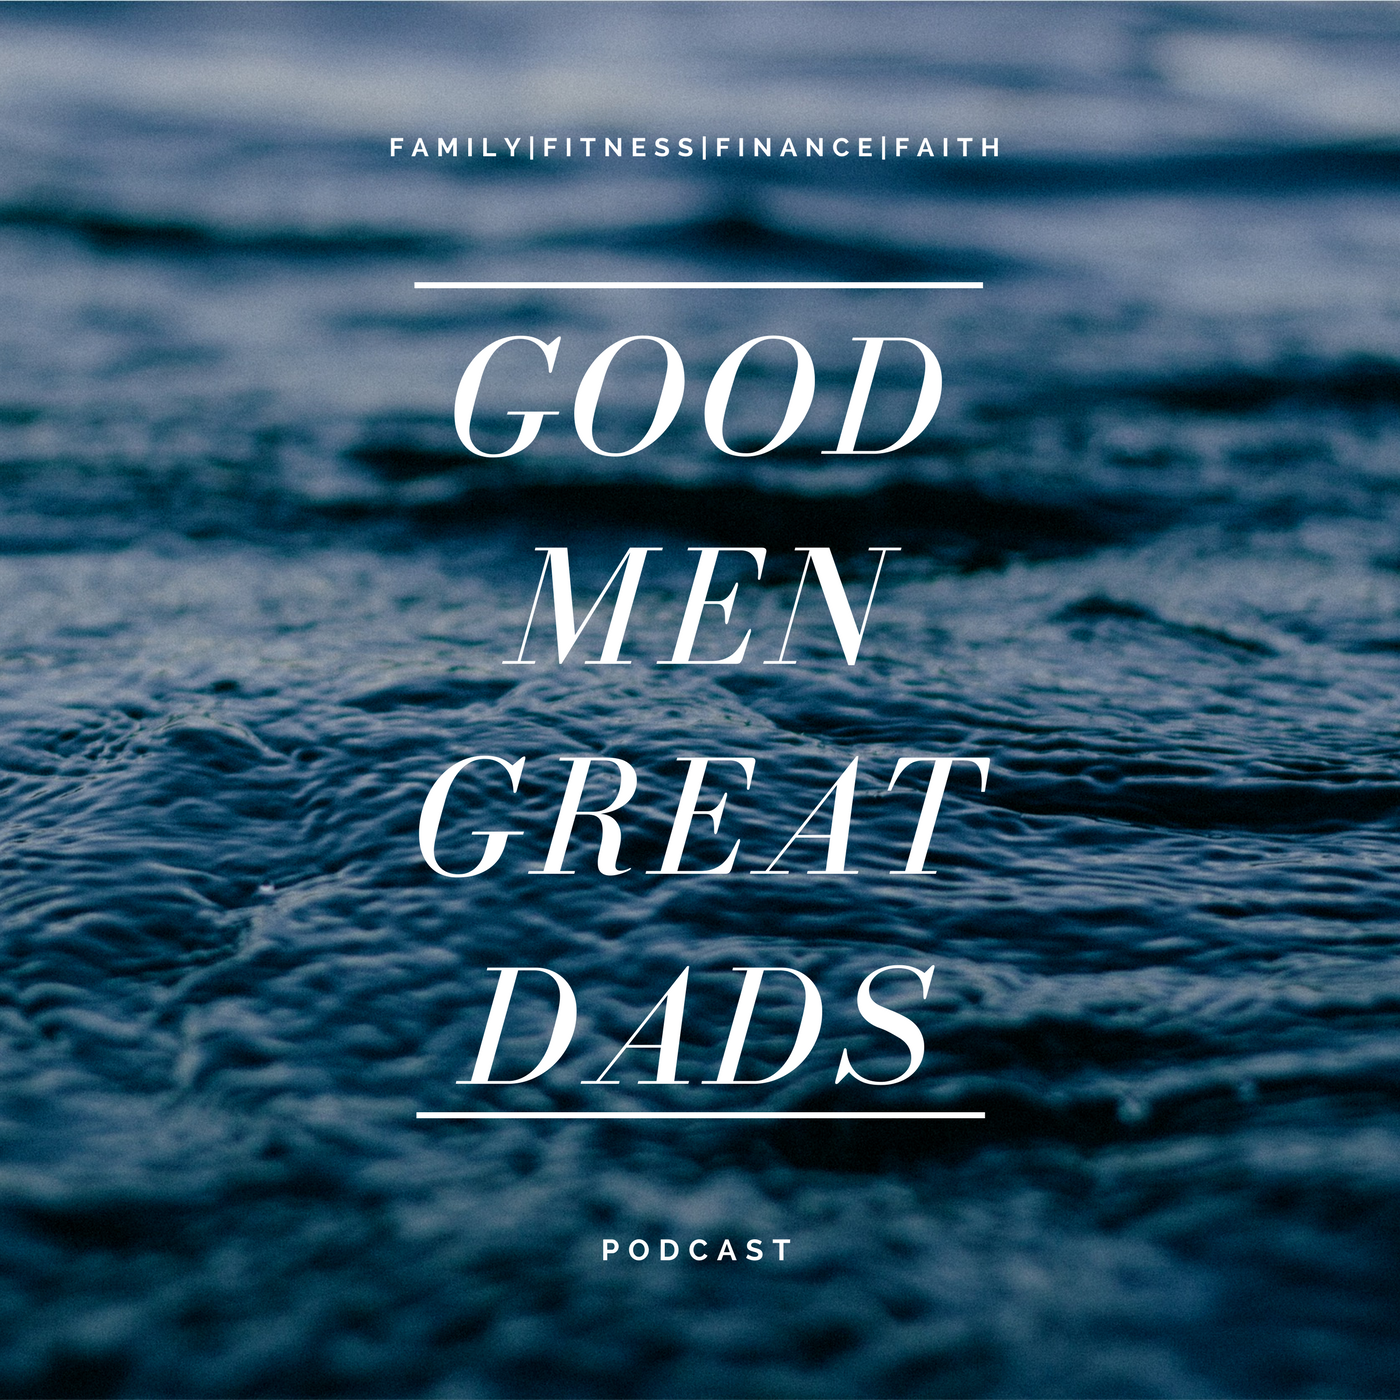 Good Men Great Dads Podcast